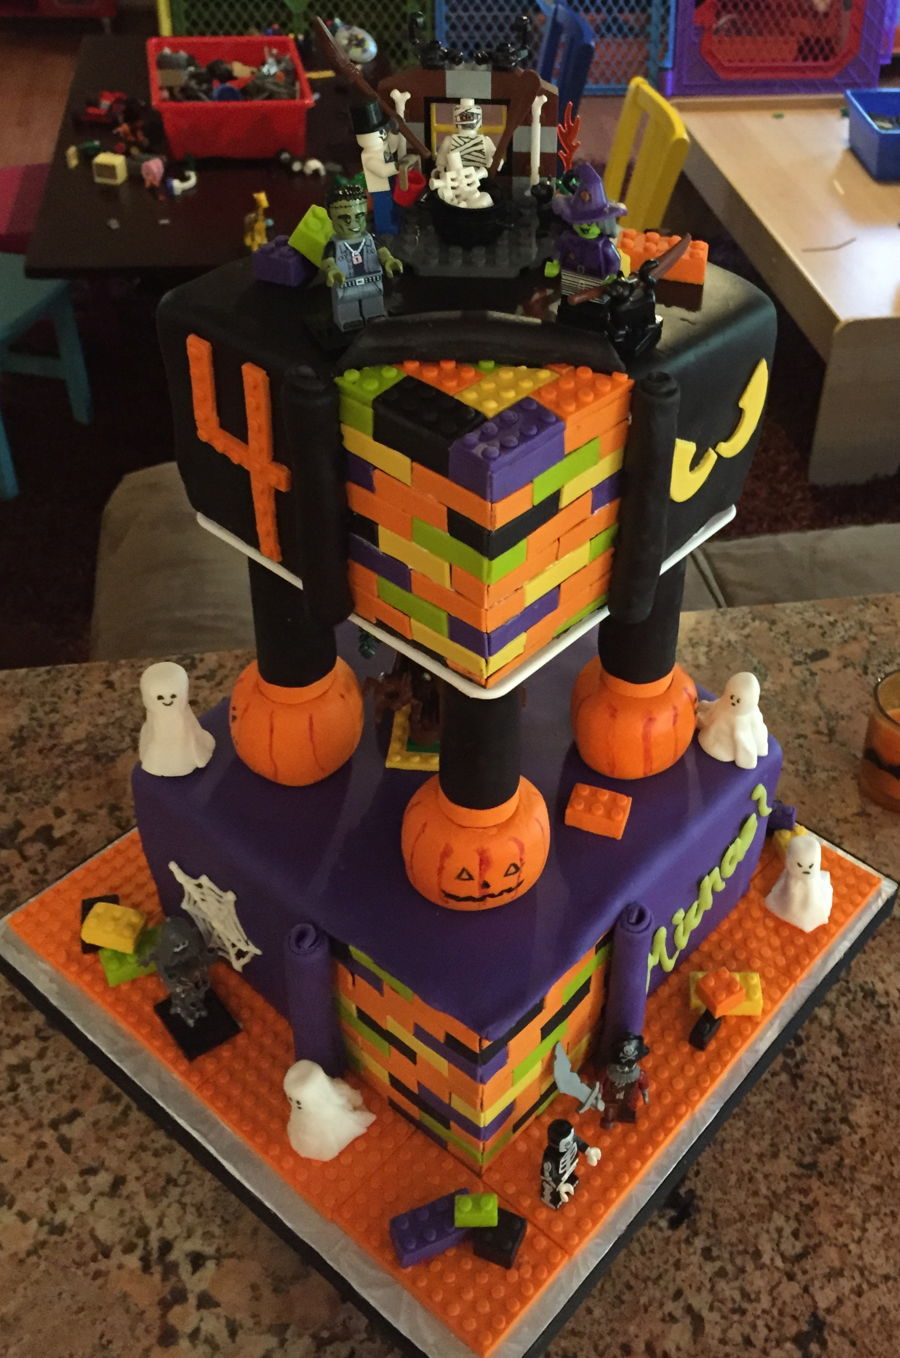 Building Blocks Halloween Themed Birthday Cake